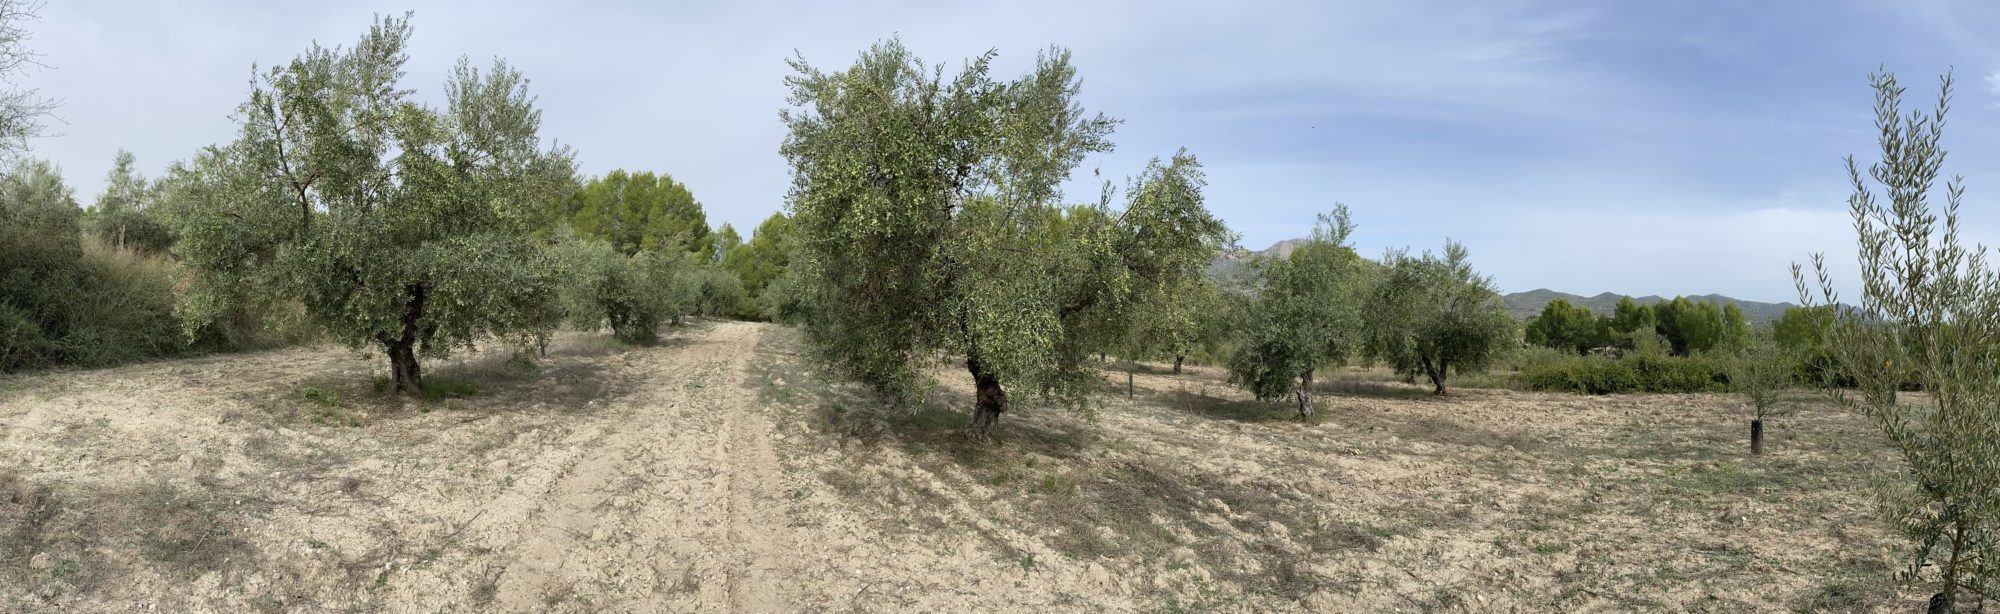 Panorama of olive trees